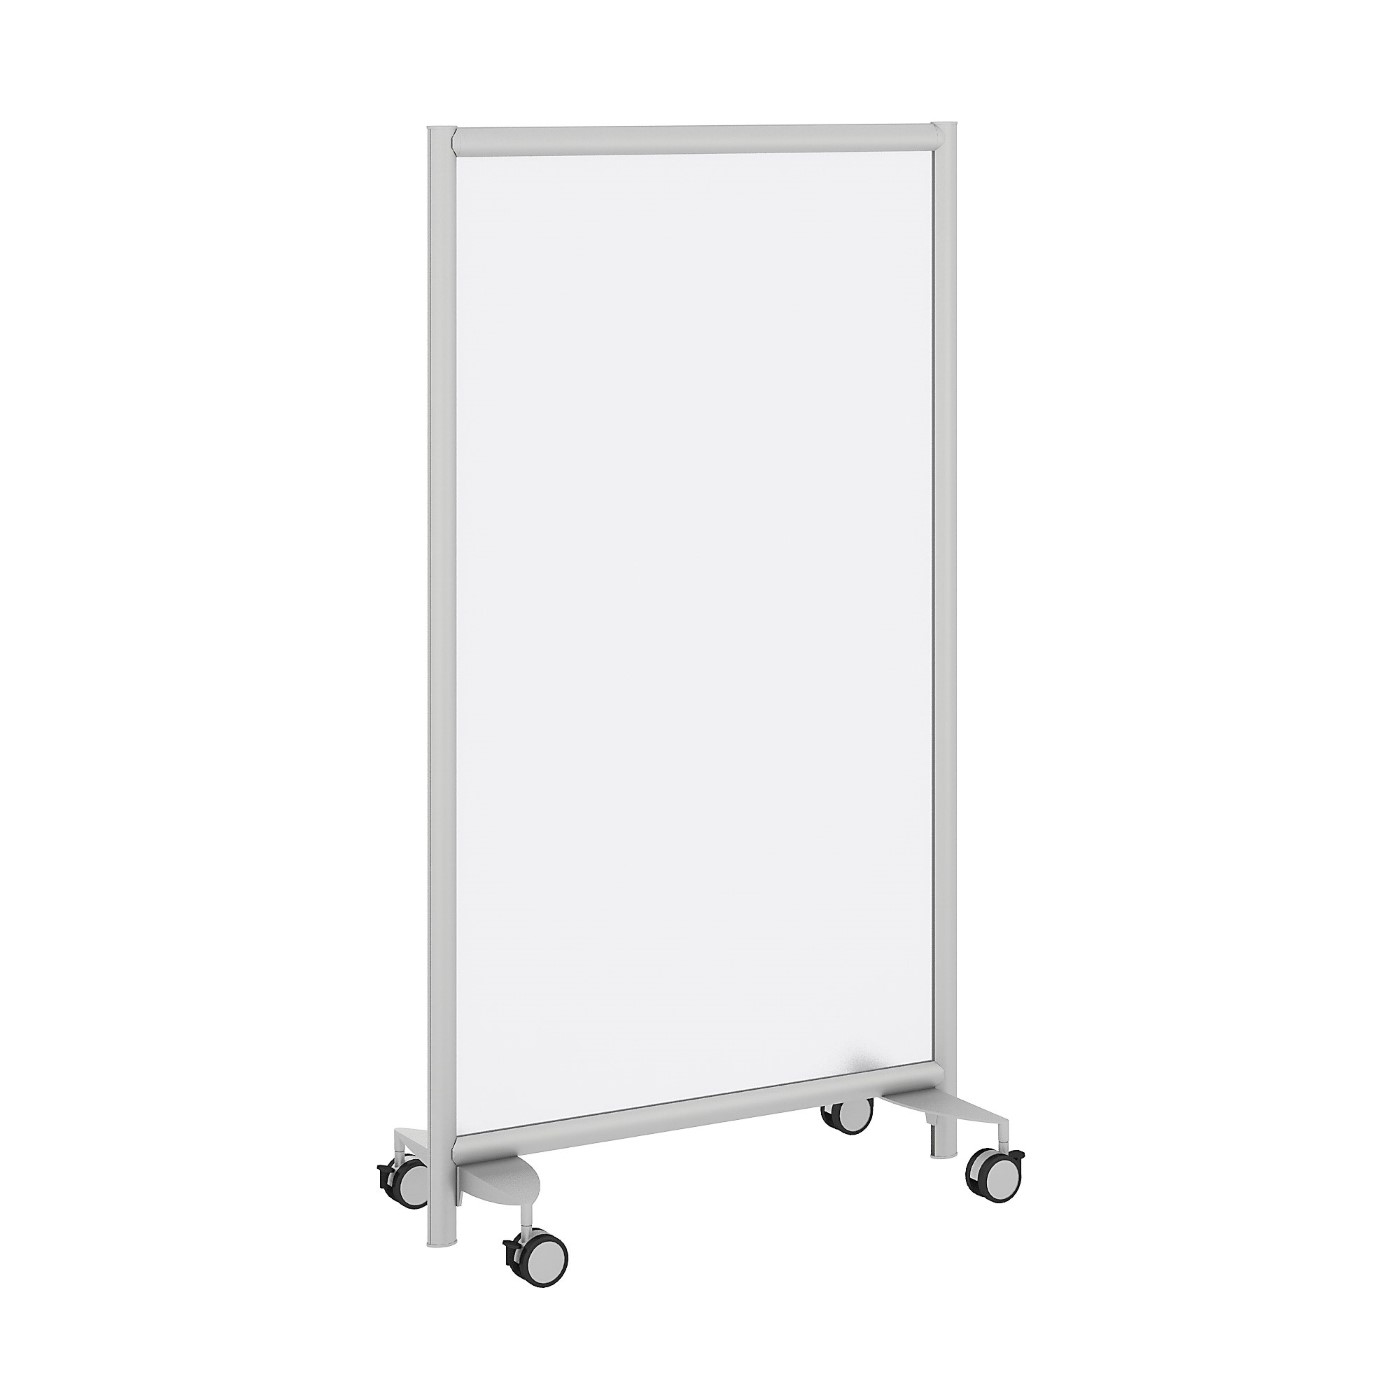 BUSH BUSINESS FURNITURE FREESTANDING FROSTED ACRYLIC PRIVACY PANEL WITH WHEELED BASE. FREE SHIPPING SALE DEDUCT 10% MORE ENTER '10percent' IN COUPON CODE BOX WHILE CHECKING OUT. ENDS 5-31-20.